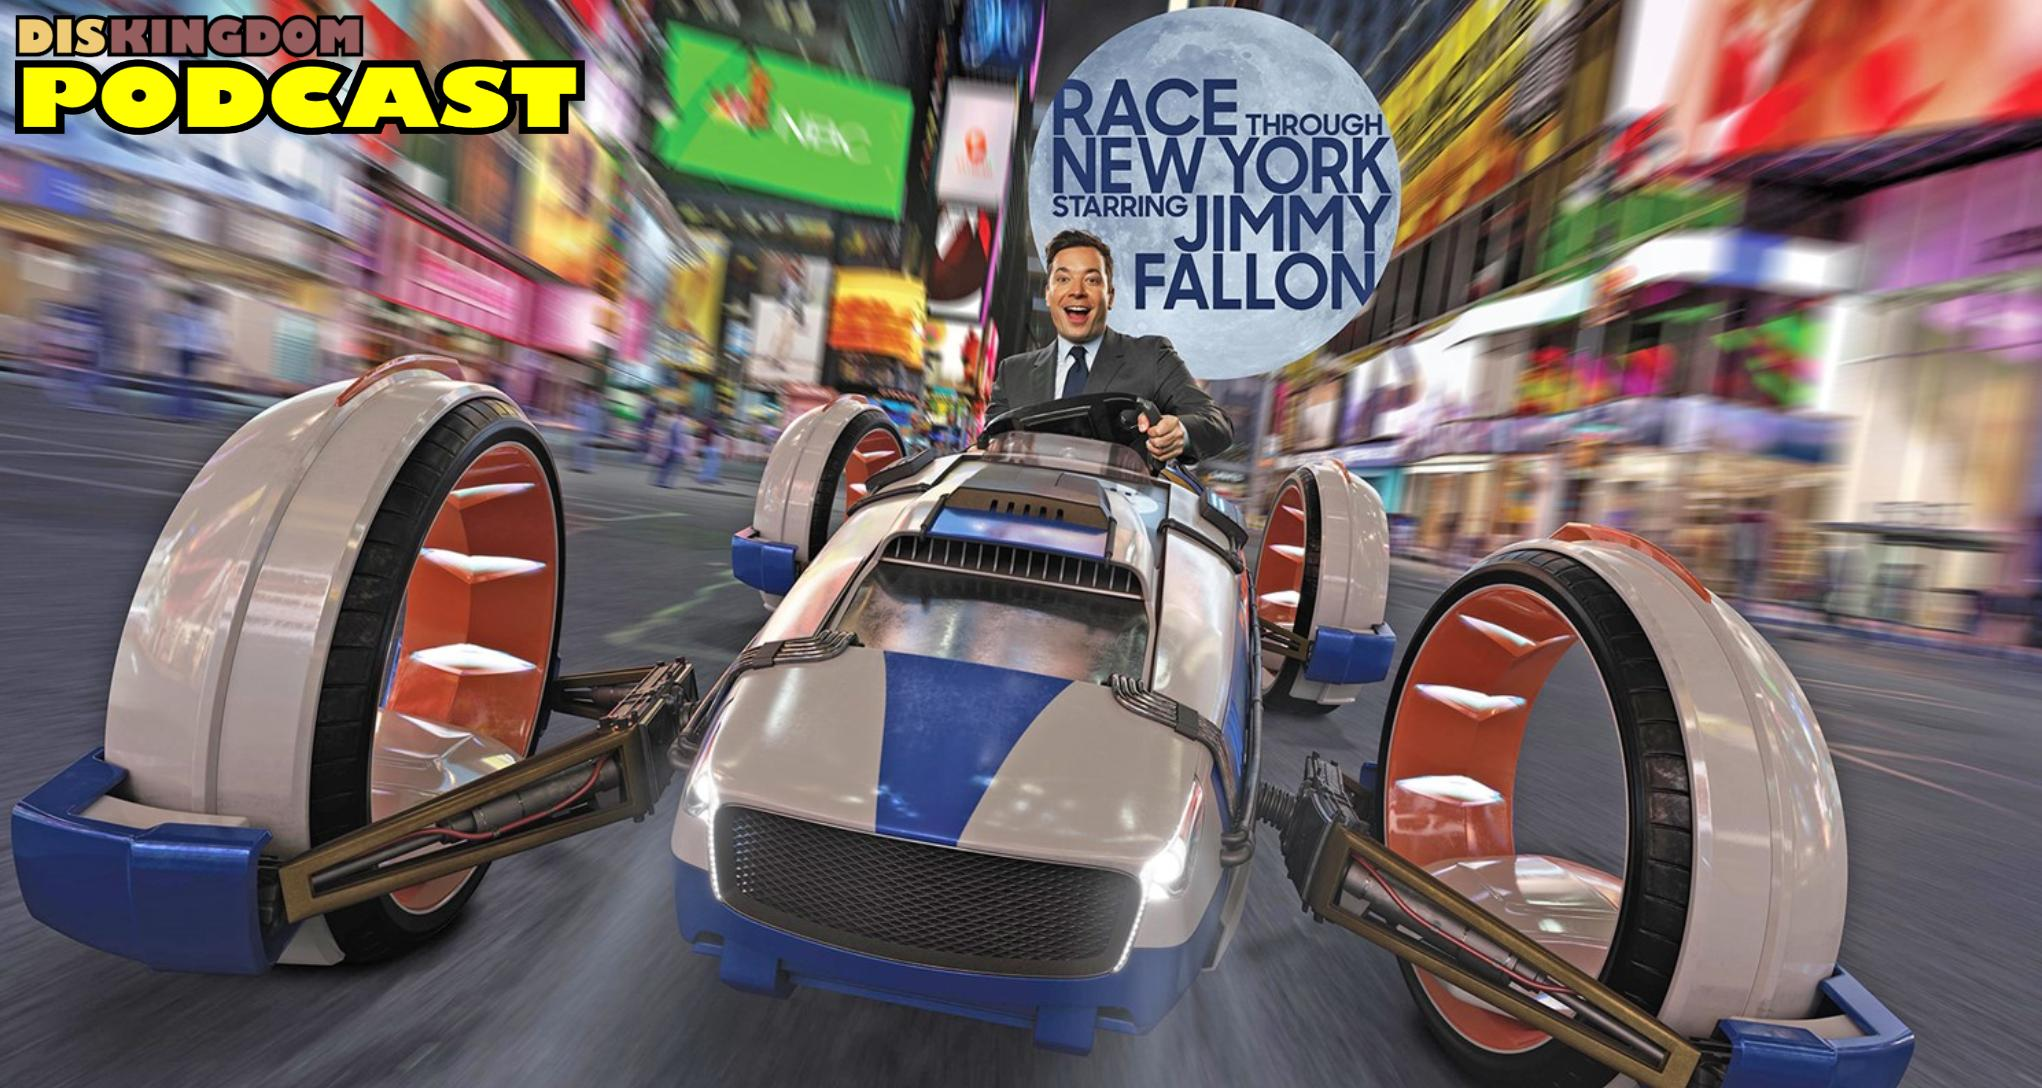 Race Through New York Featuring Jimmy Fallon Review | DisKingdom Podcast